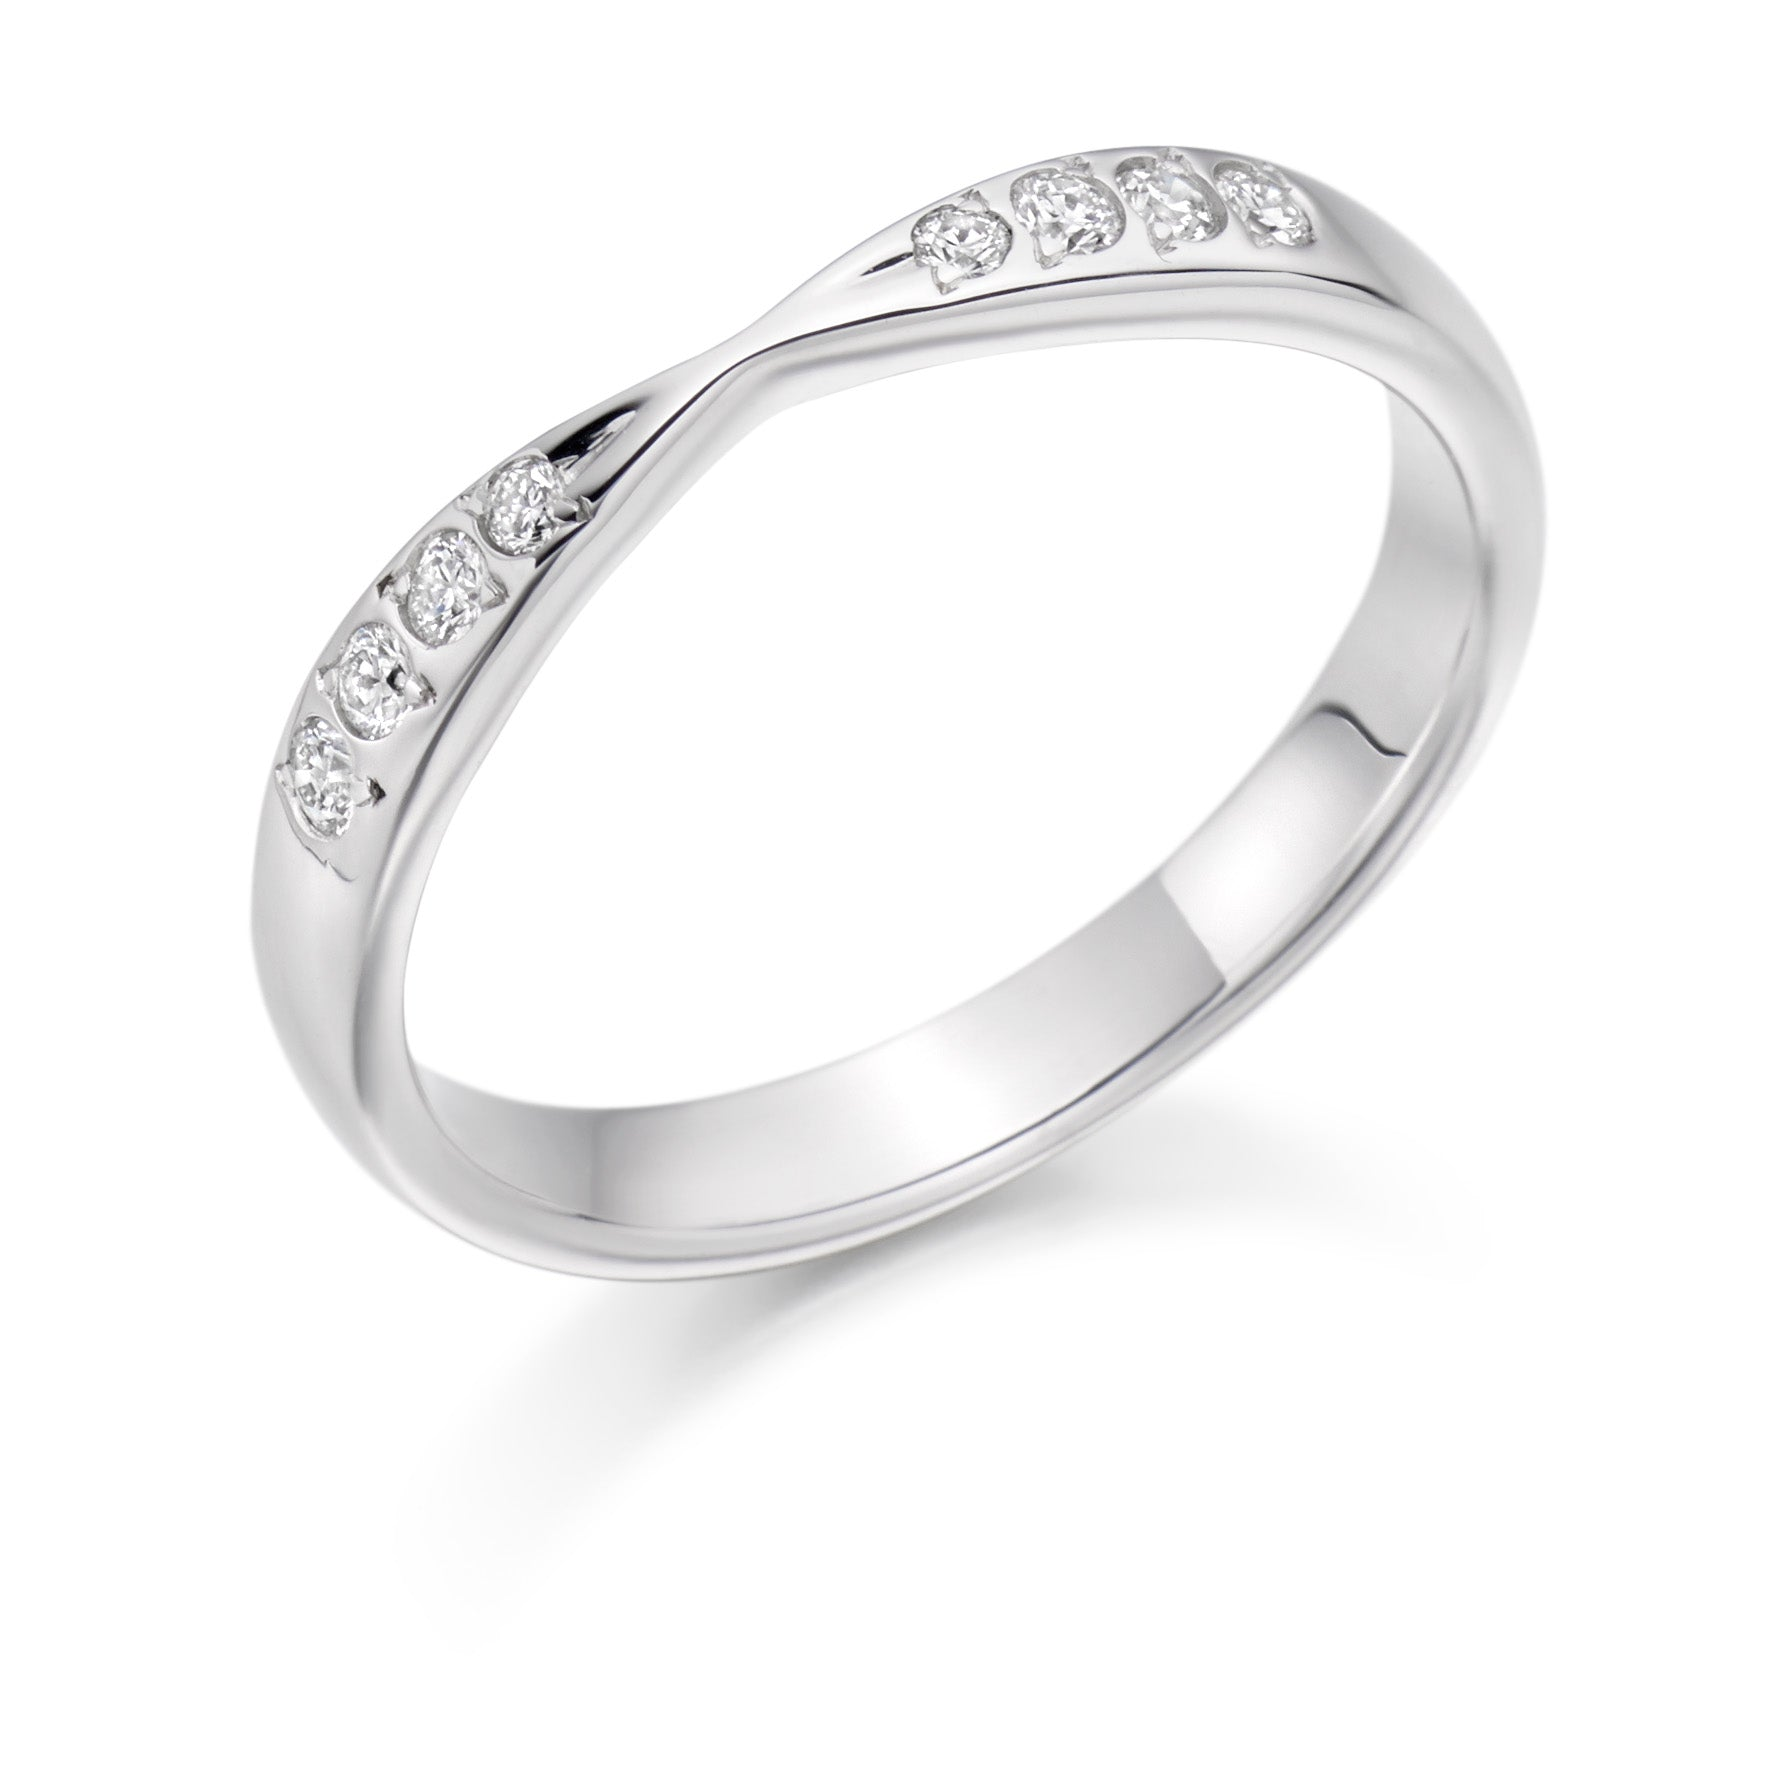 0.15ct Round Brilliant Cut Diamonds Curved and shaped - Wedding Ring - (Home Try-On)